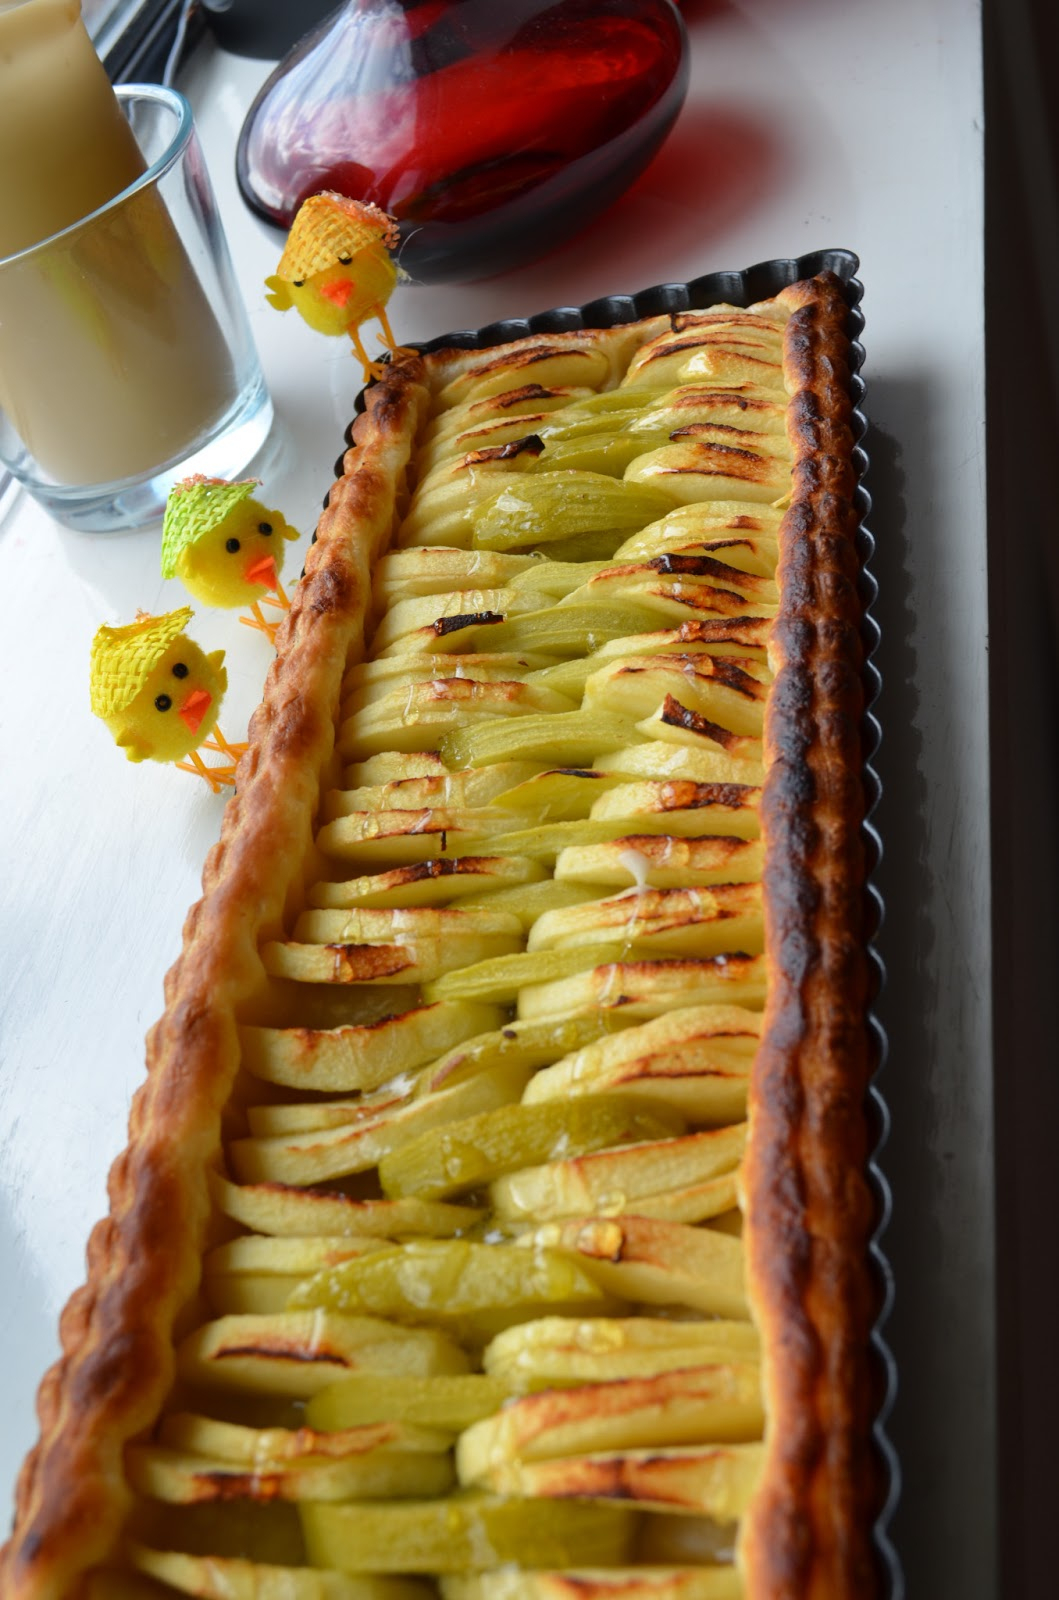 U&Me In The Kitchen: Tarte Pomme&Kiwi - Kiwi&Apple Tart tout Tarte Pomme Banane Kiwi